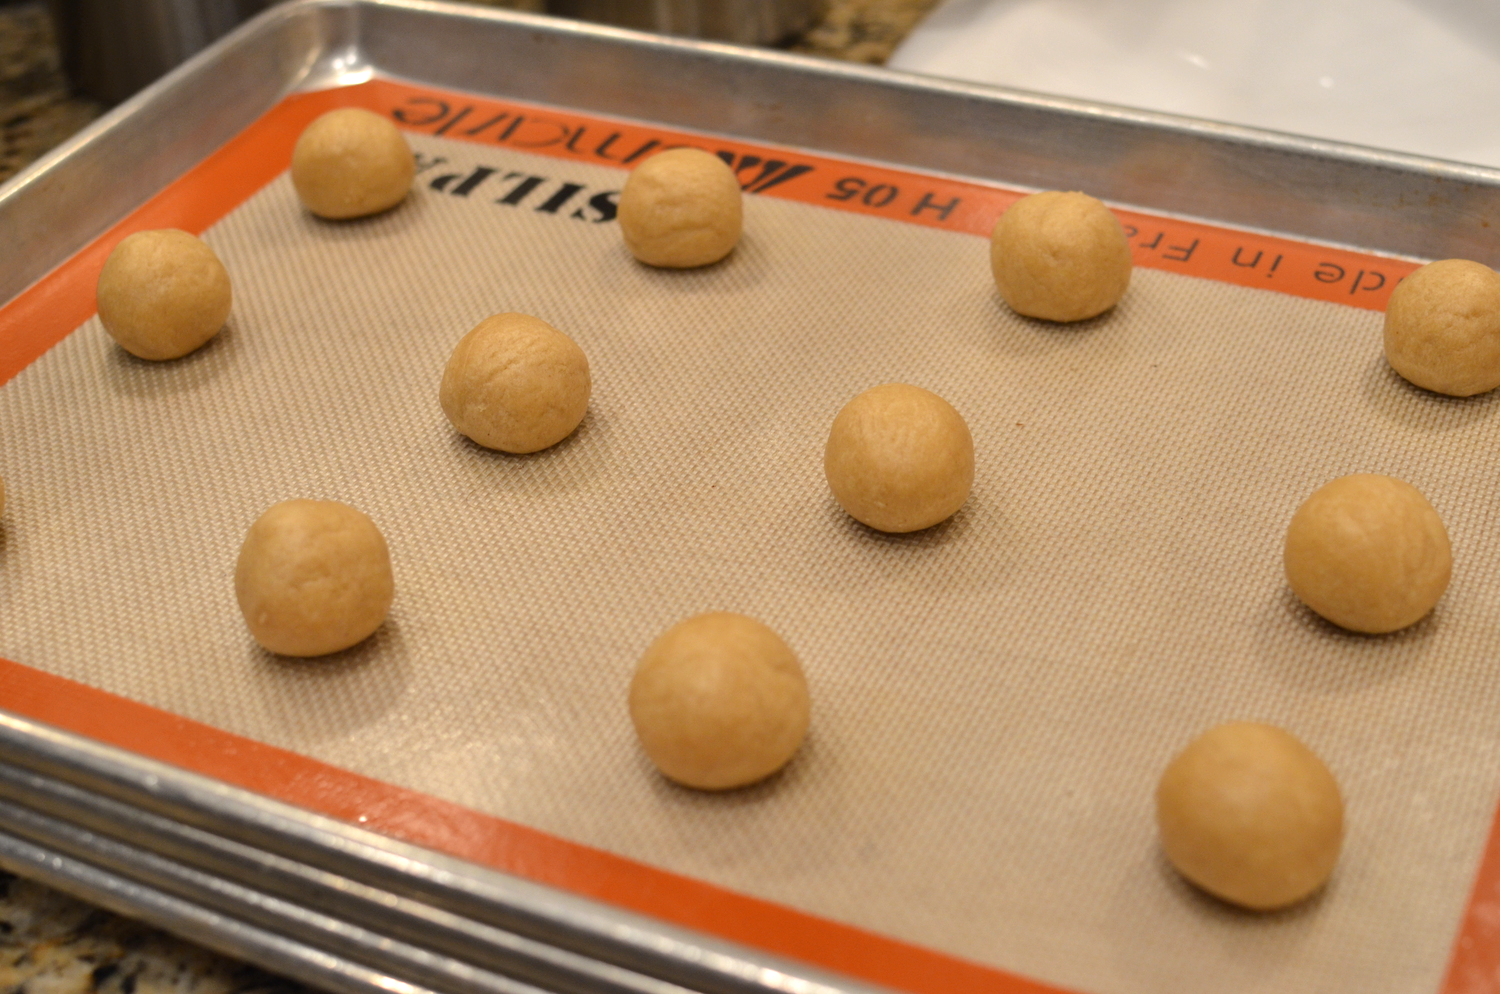 Roll the dough into round balls. Bake in a preheated oven for 10-12 minutes, turning the pan halfway if your oven has hot spots.